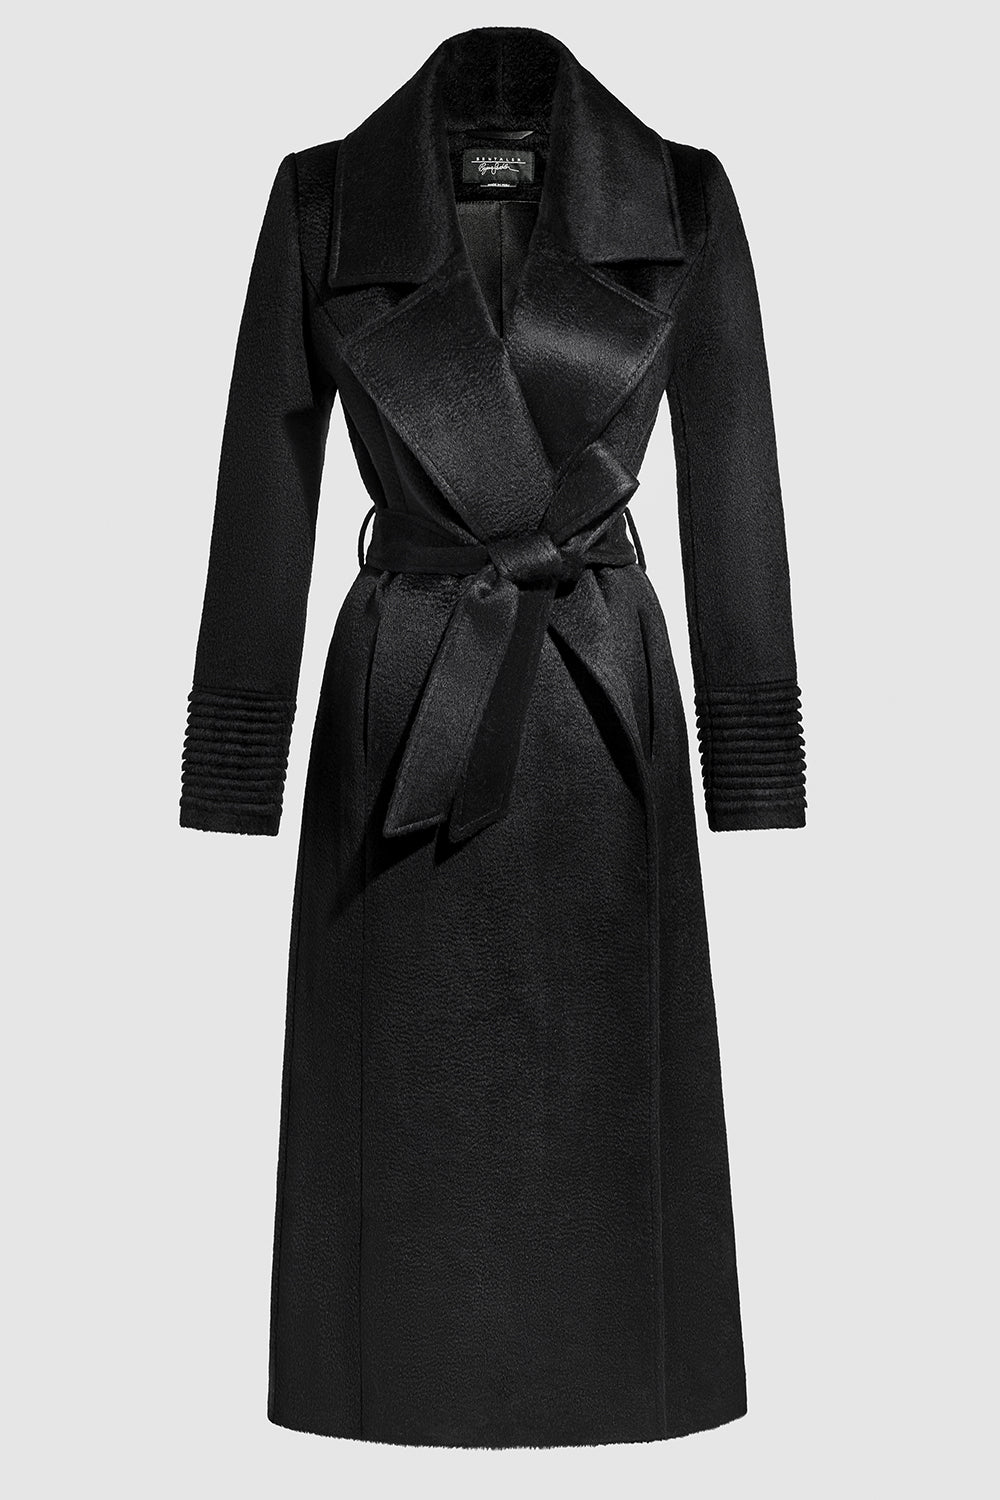 Sentaler Suri Alpaca Long Notched Collar Wrap Coat featured in Suri Alpaca and available in Black. Seen off model.